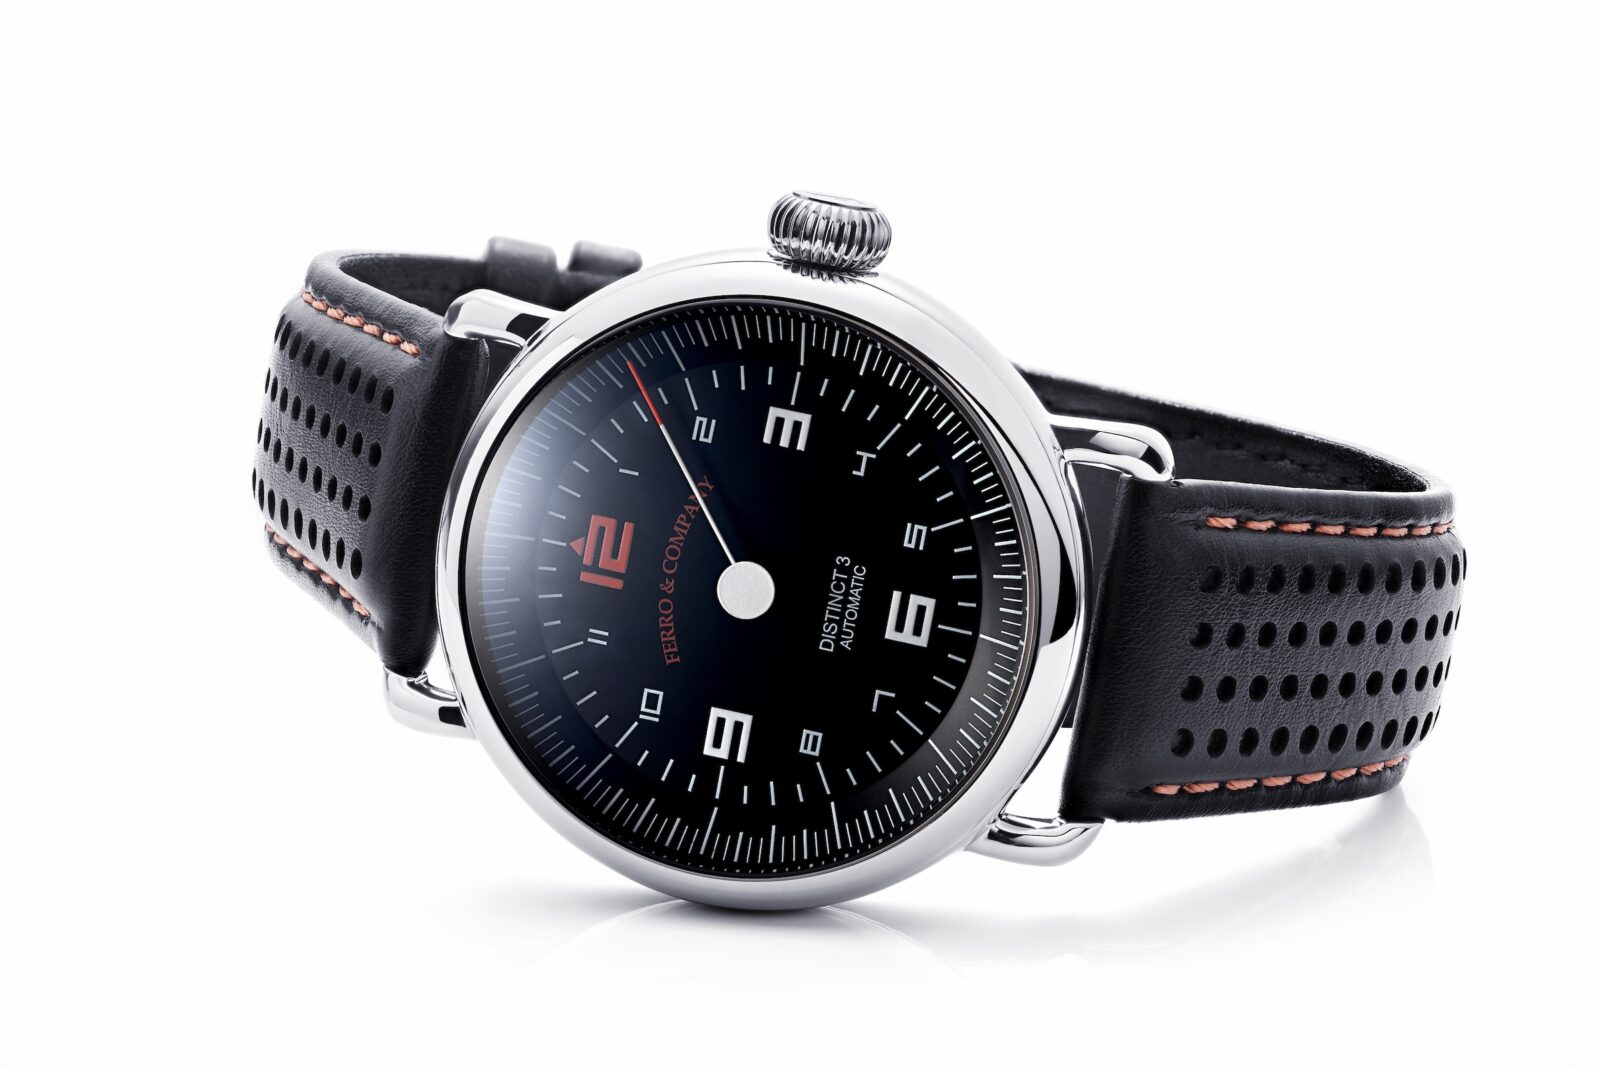 Ferro & Co. Distinct III Vintage Racing Watch